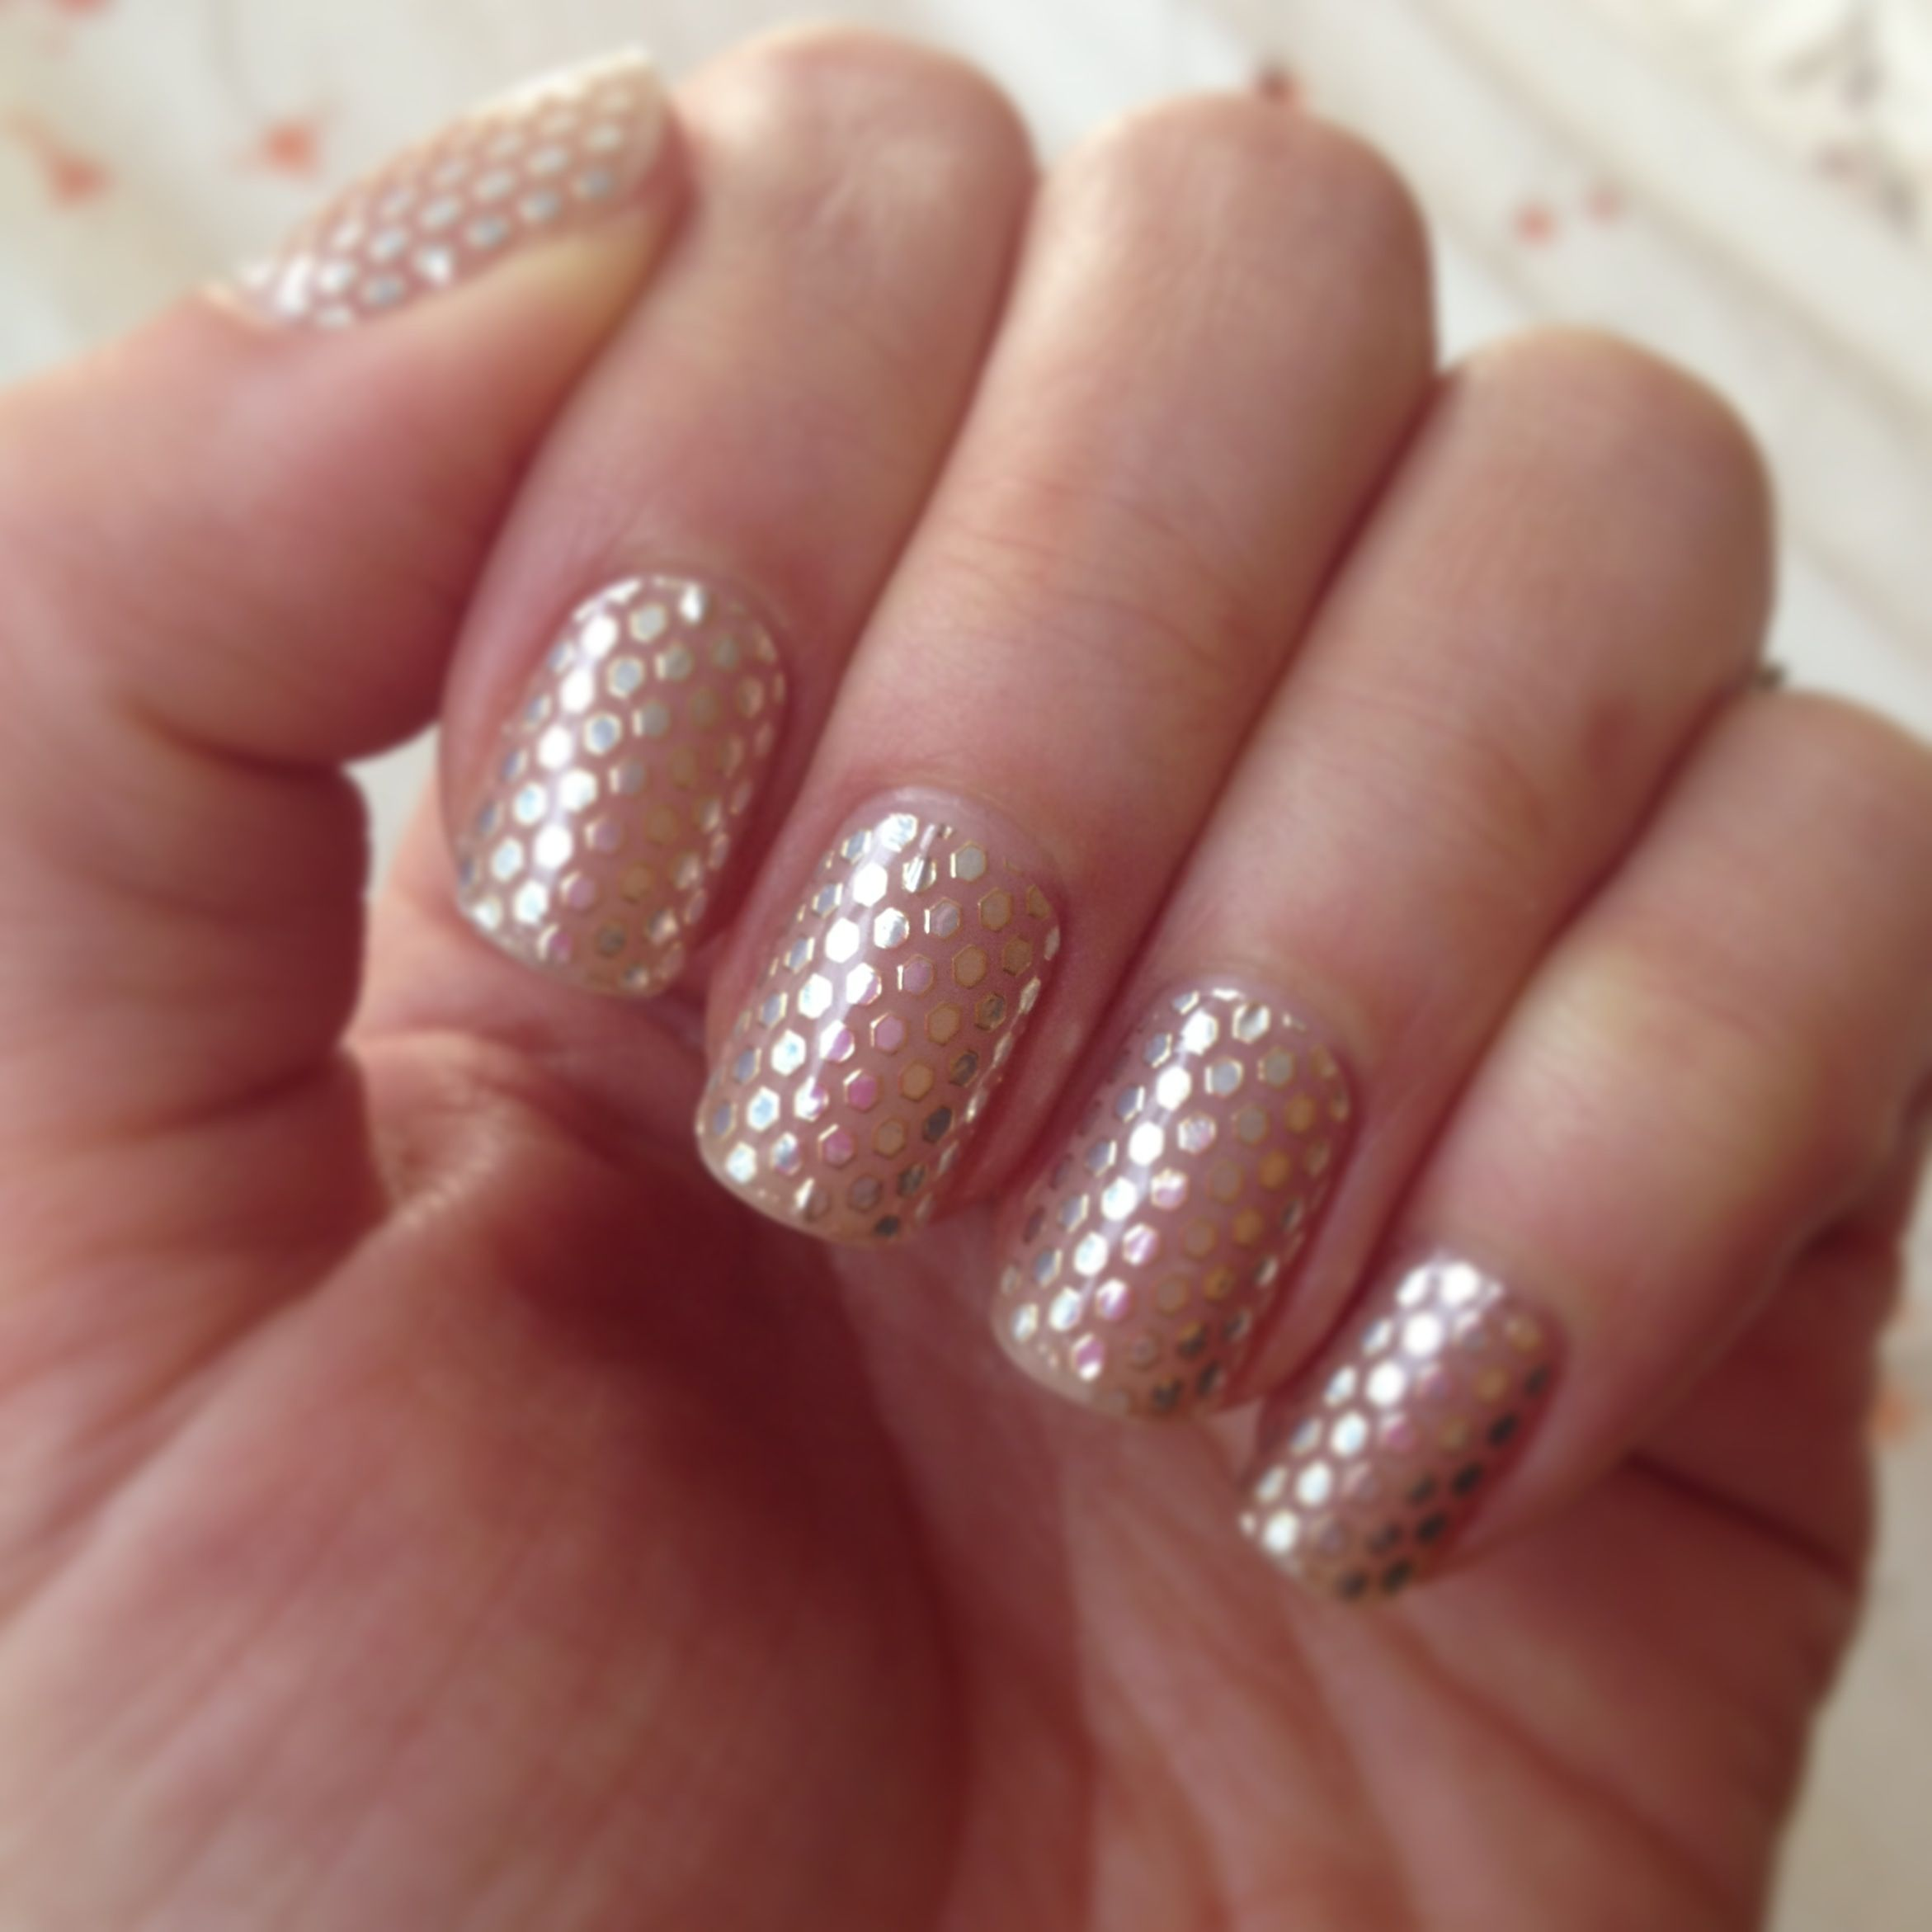 Essie nail stickers | My Style Pinboard | Pinterest | Nail stickers ...